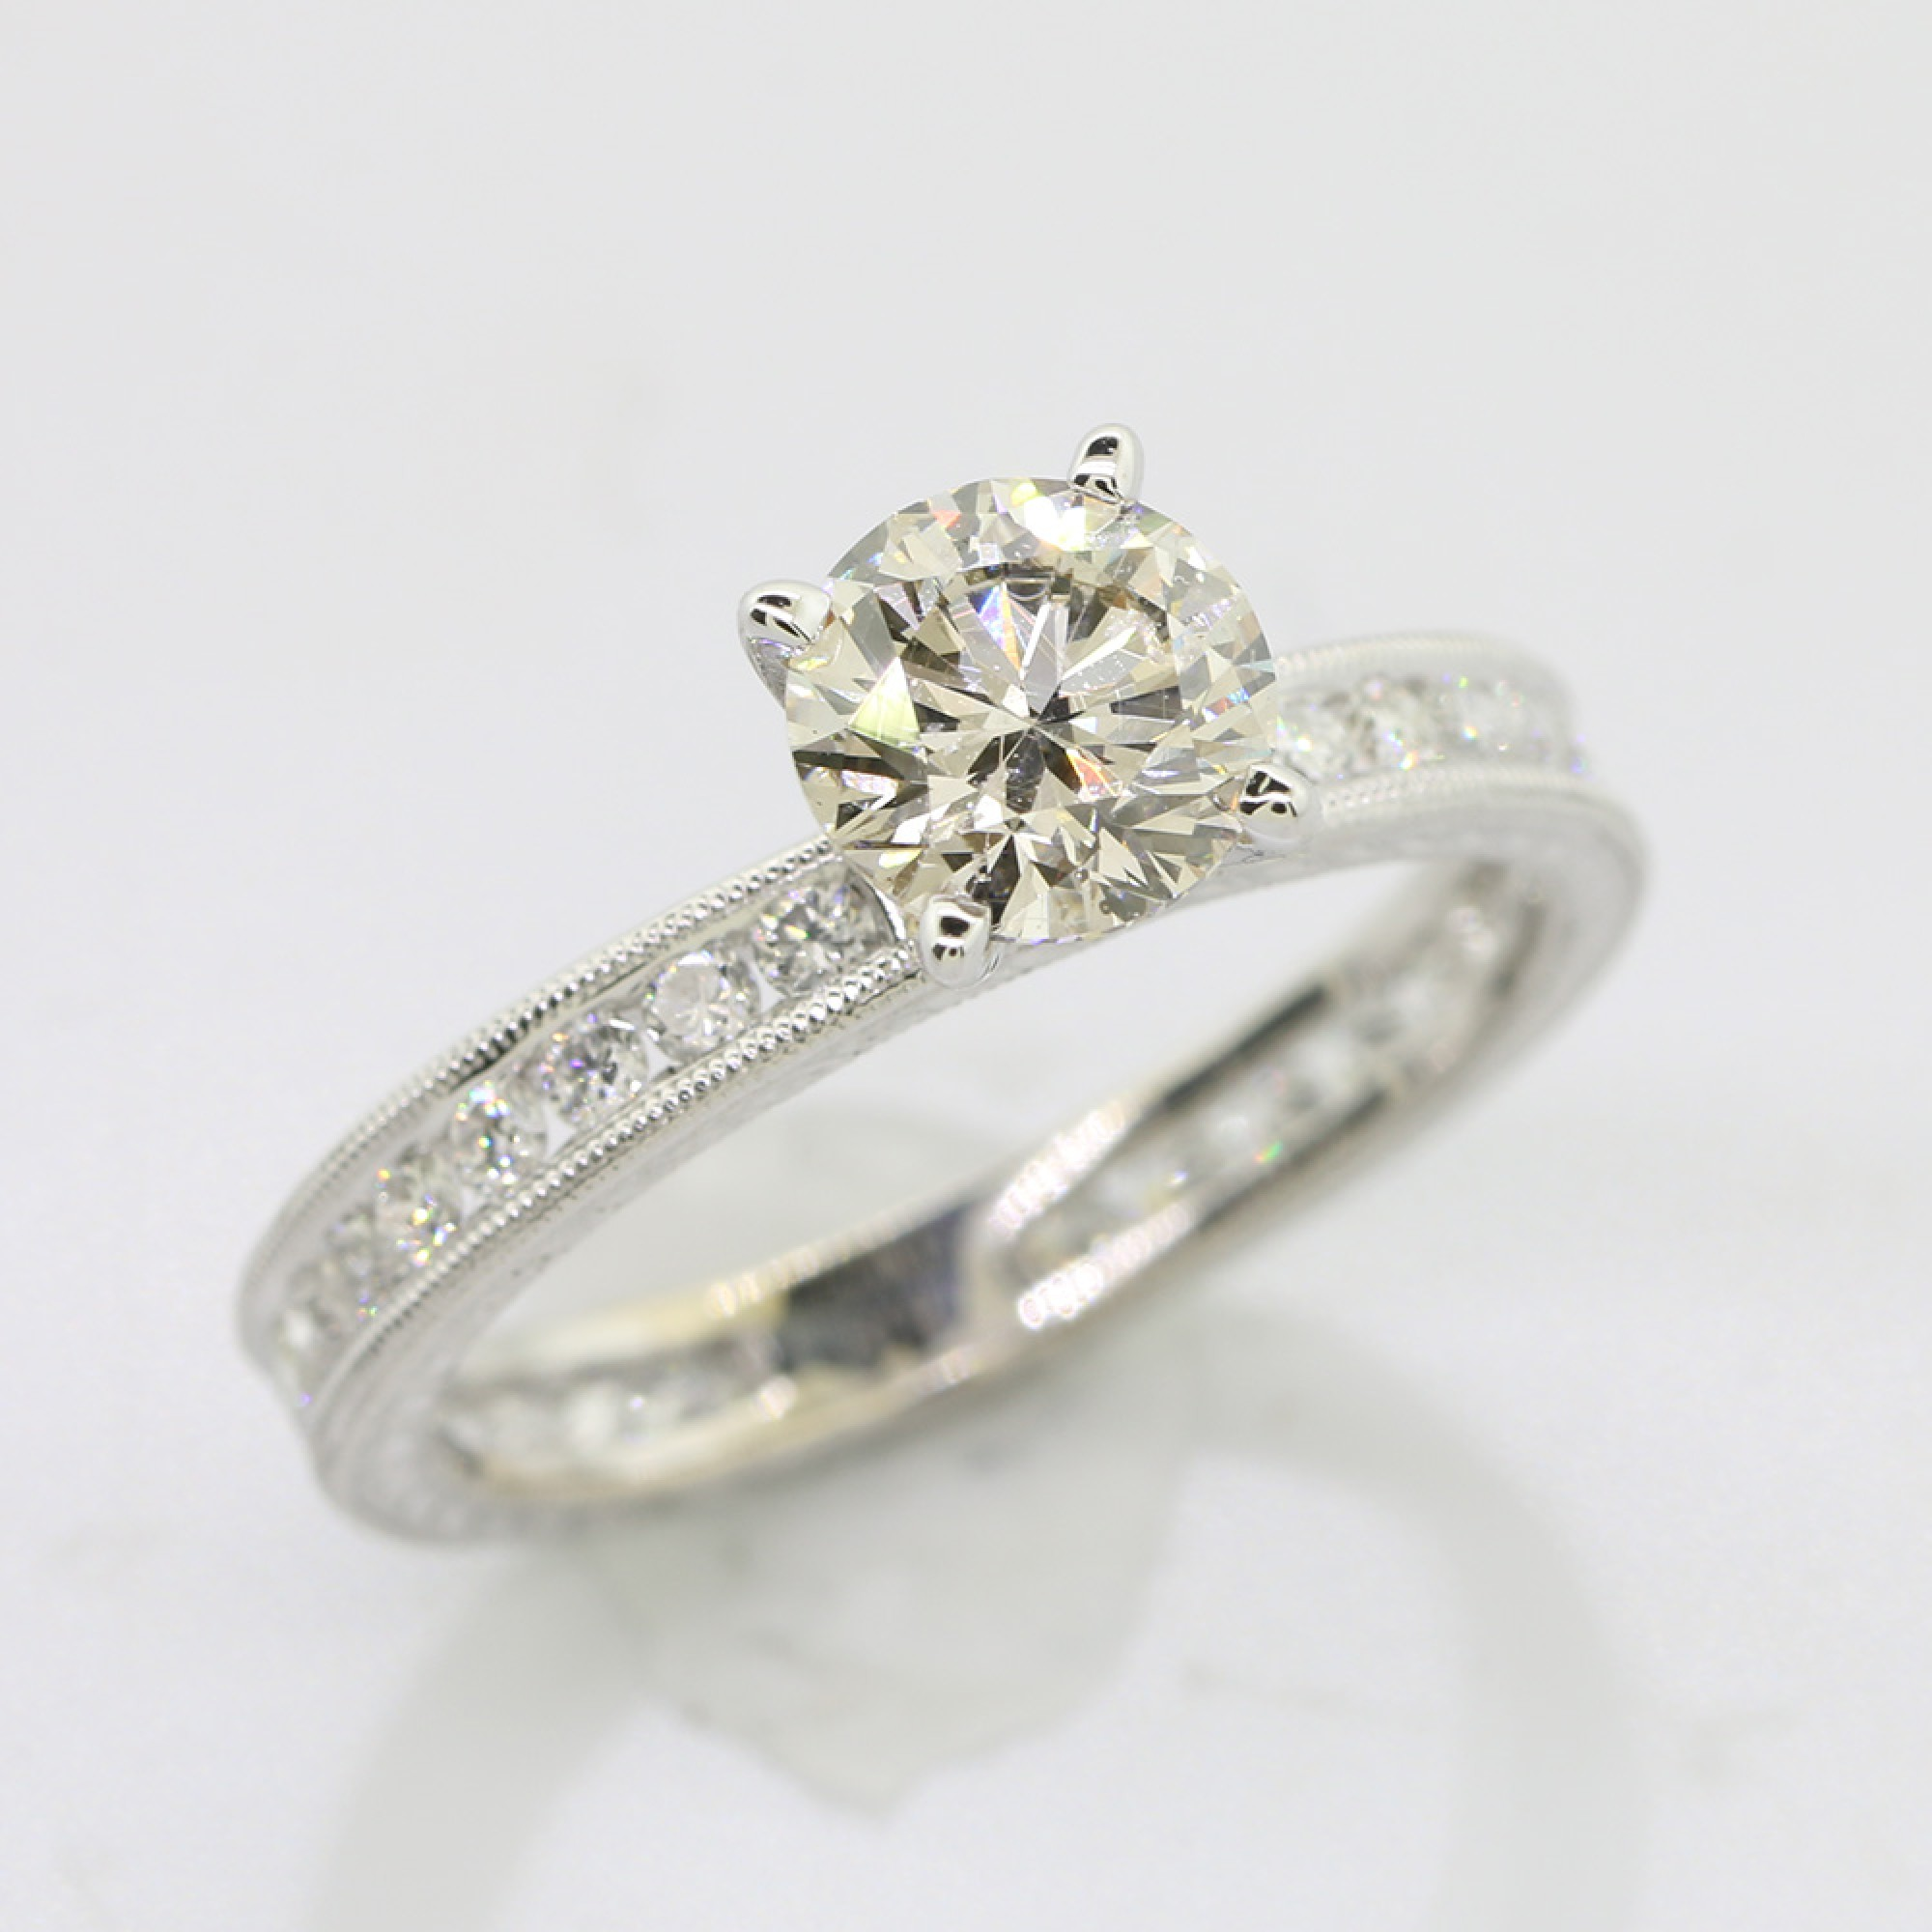 1 06 Cts Round Cut Diamond In 18k White Gold Engagement Ring Cheap